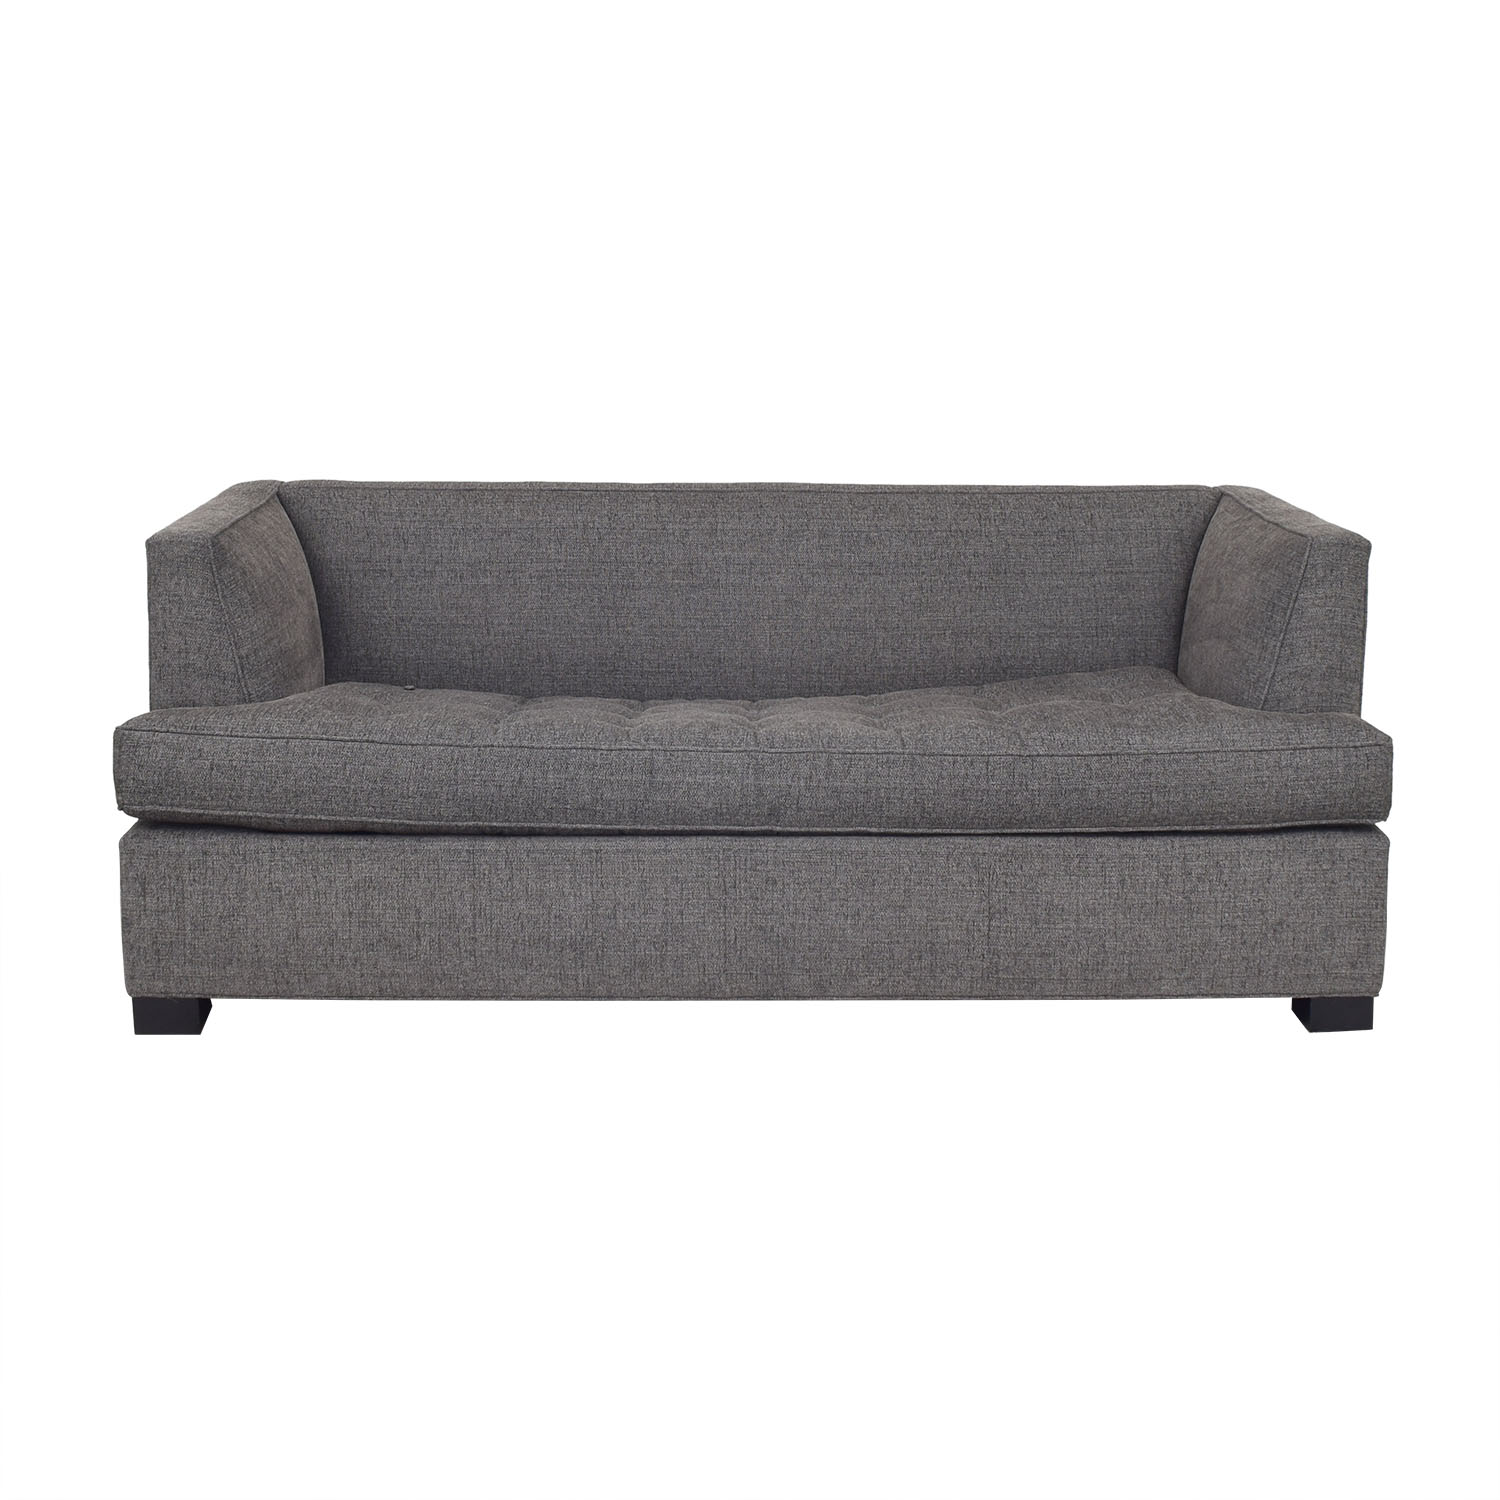 shop Mitchell Gold + Bob Williams Full Sleeper Sofa Mitchell Gold + Bob Williams Sofa Beds